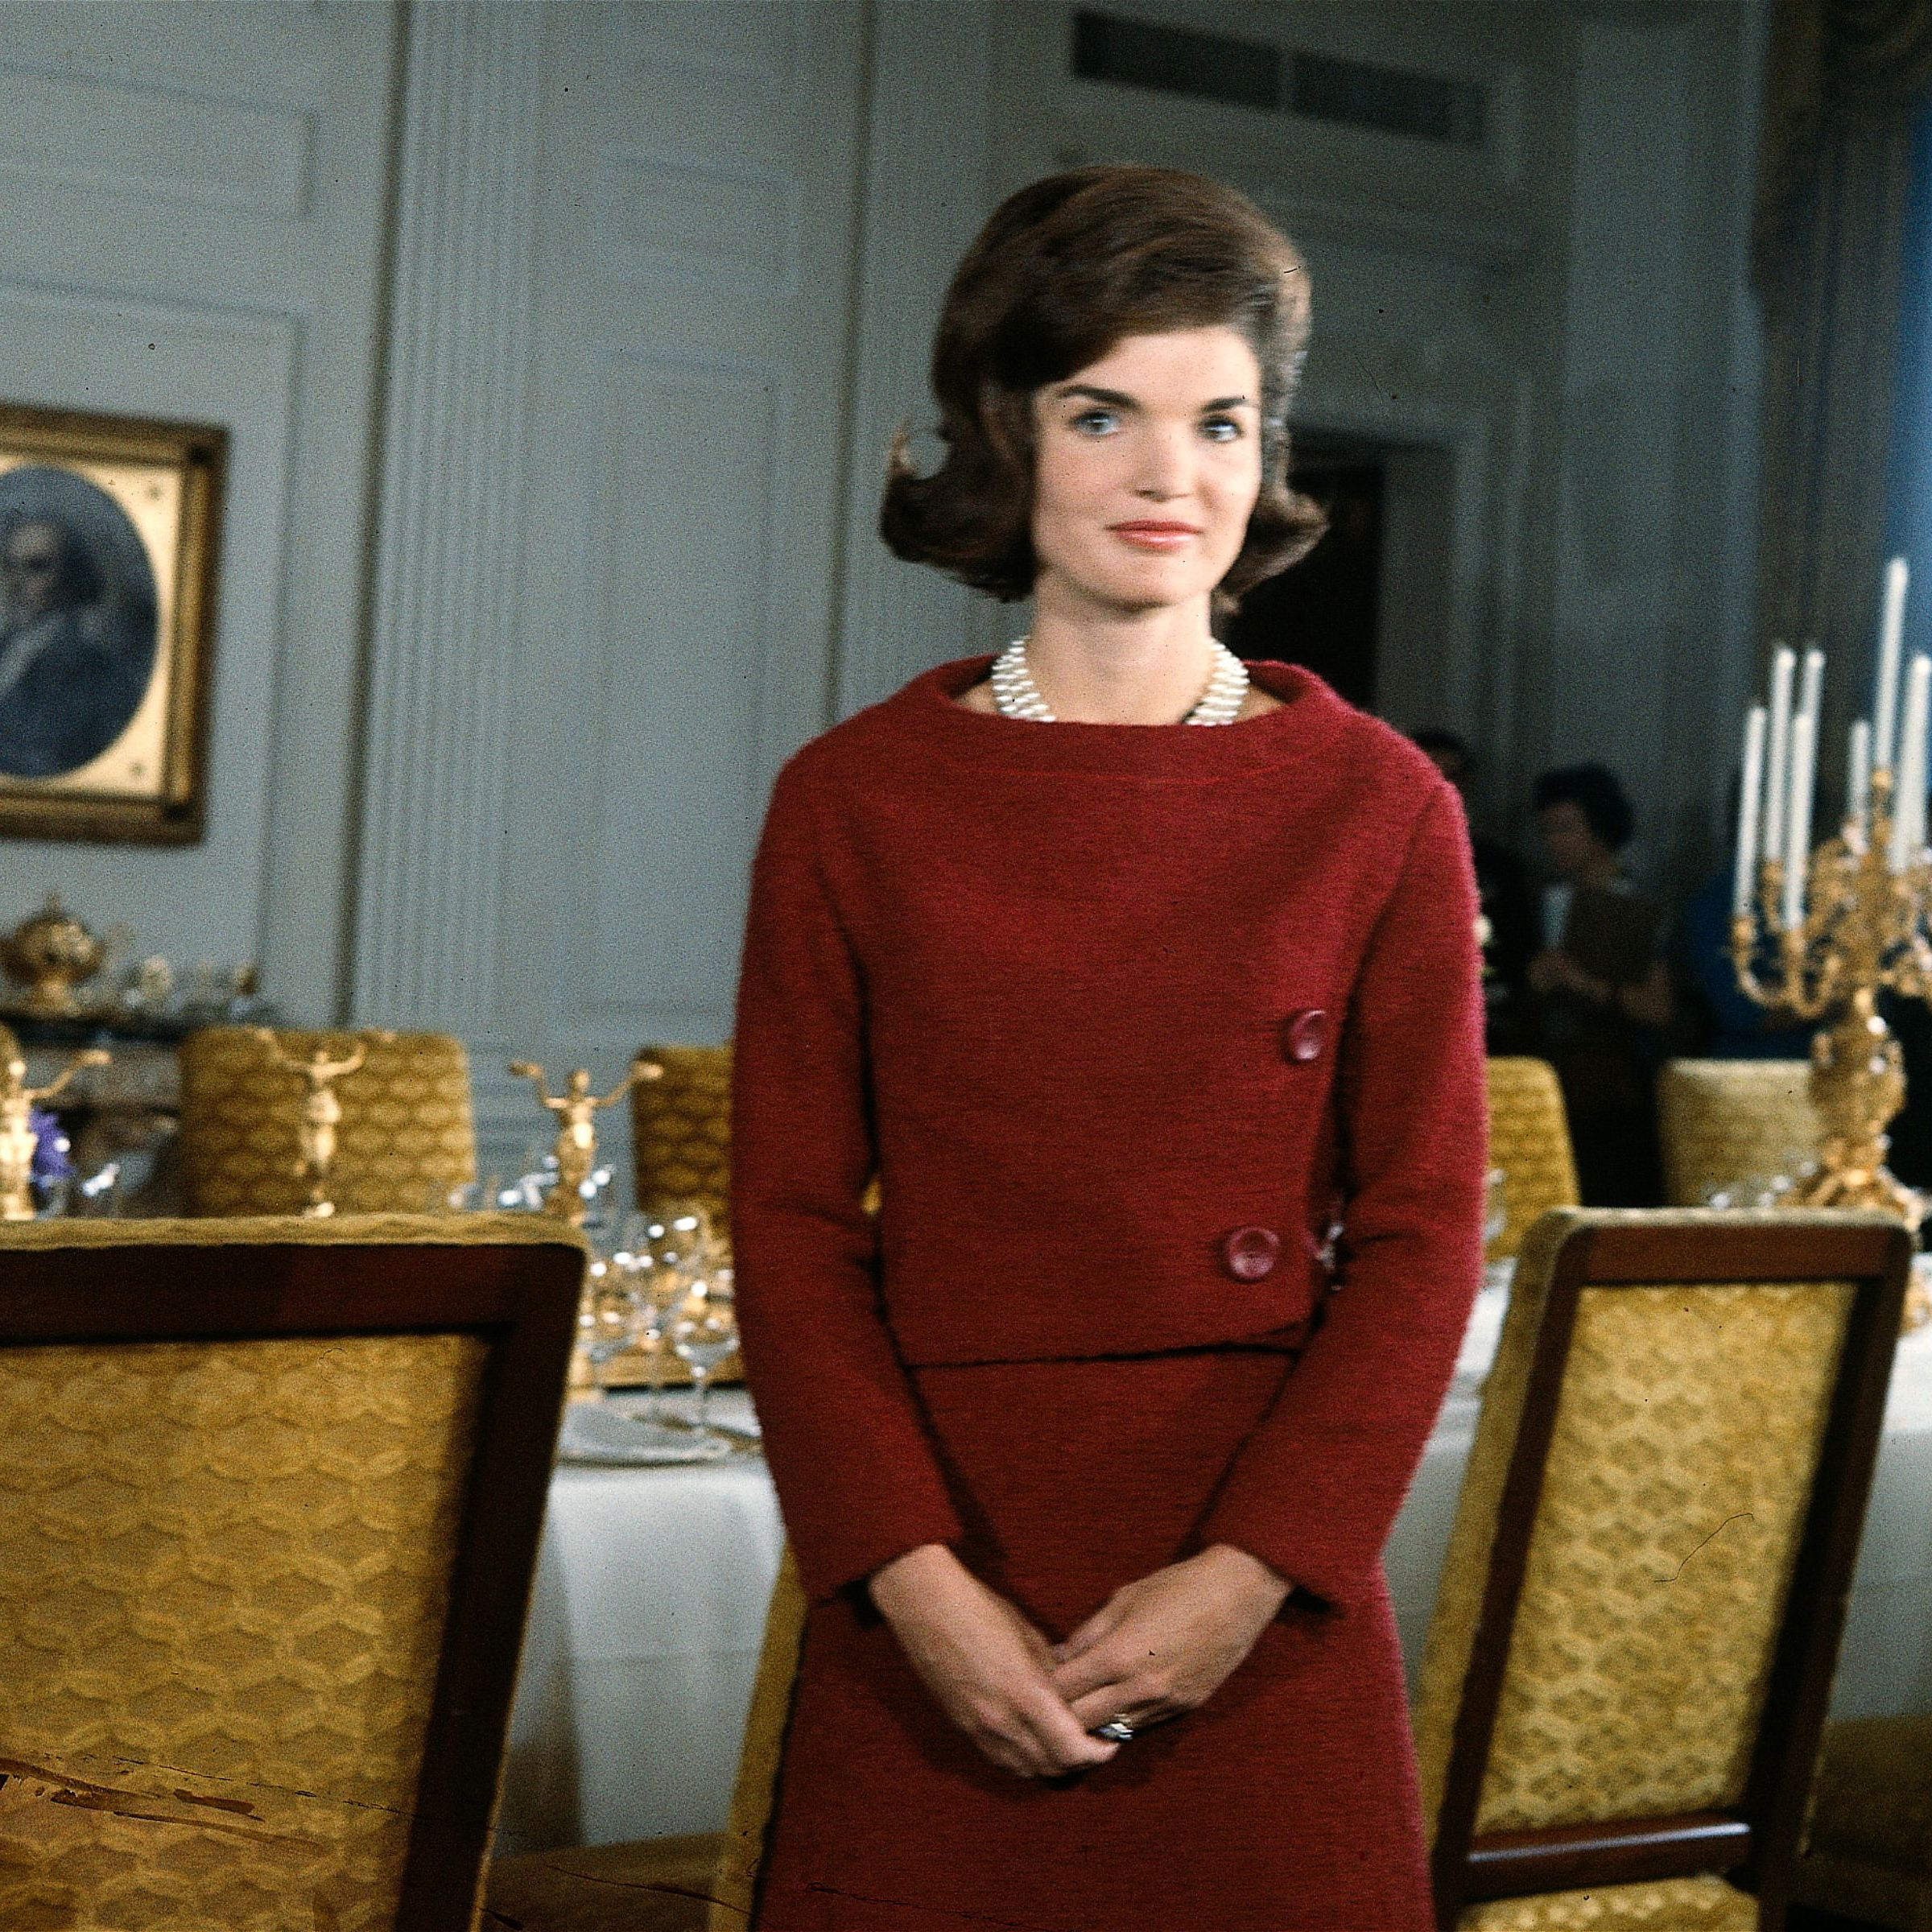 """<p><em data-redactor-tag=""""em"""" data-verified=""""redactor"""">A Tour of the White House with Mrs. John F. Kennedy</em> was broadcast on both CBS and NBC on Valentine's Day in 1962 (it was also shown later on ABC). The program was the first-ever televised tour of the White House, and—at least <a href=""""http://www.cbsnews.com/news/jackie-kennedys-devotion-to-white-house-revealed/"""" target=""""_blank"""" data-tracking-id=""""recirc-text-link"""">according to CBS</a>—the """"first prime-time documentary explicitly marketed toward a female audience.""""</p>"""